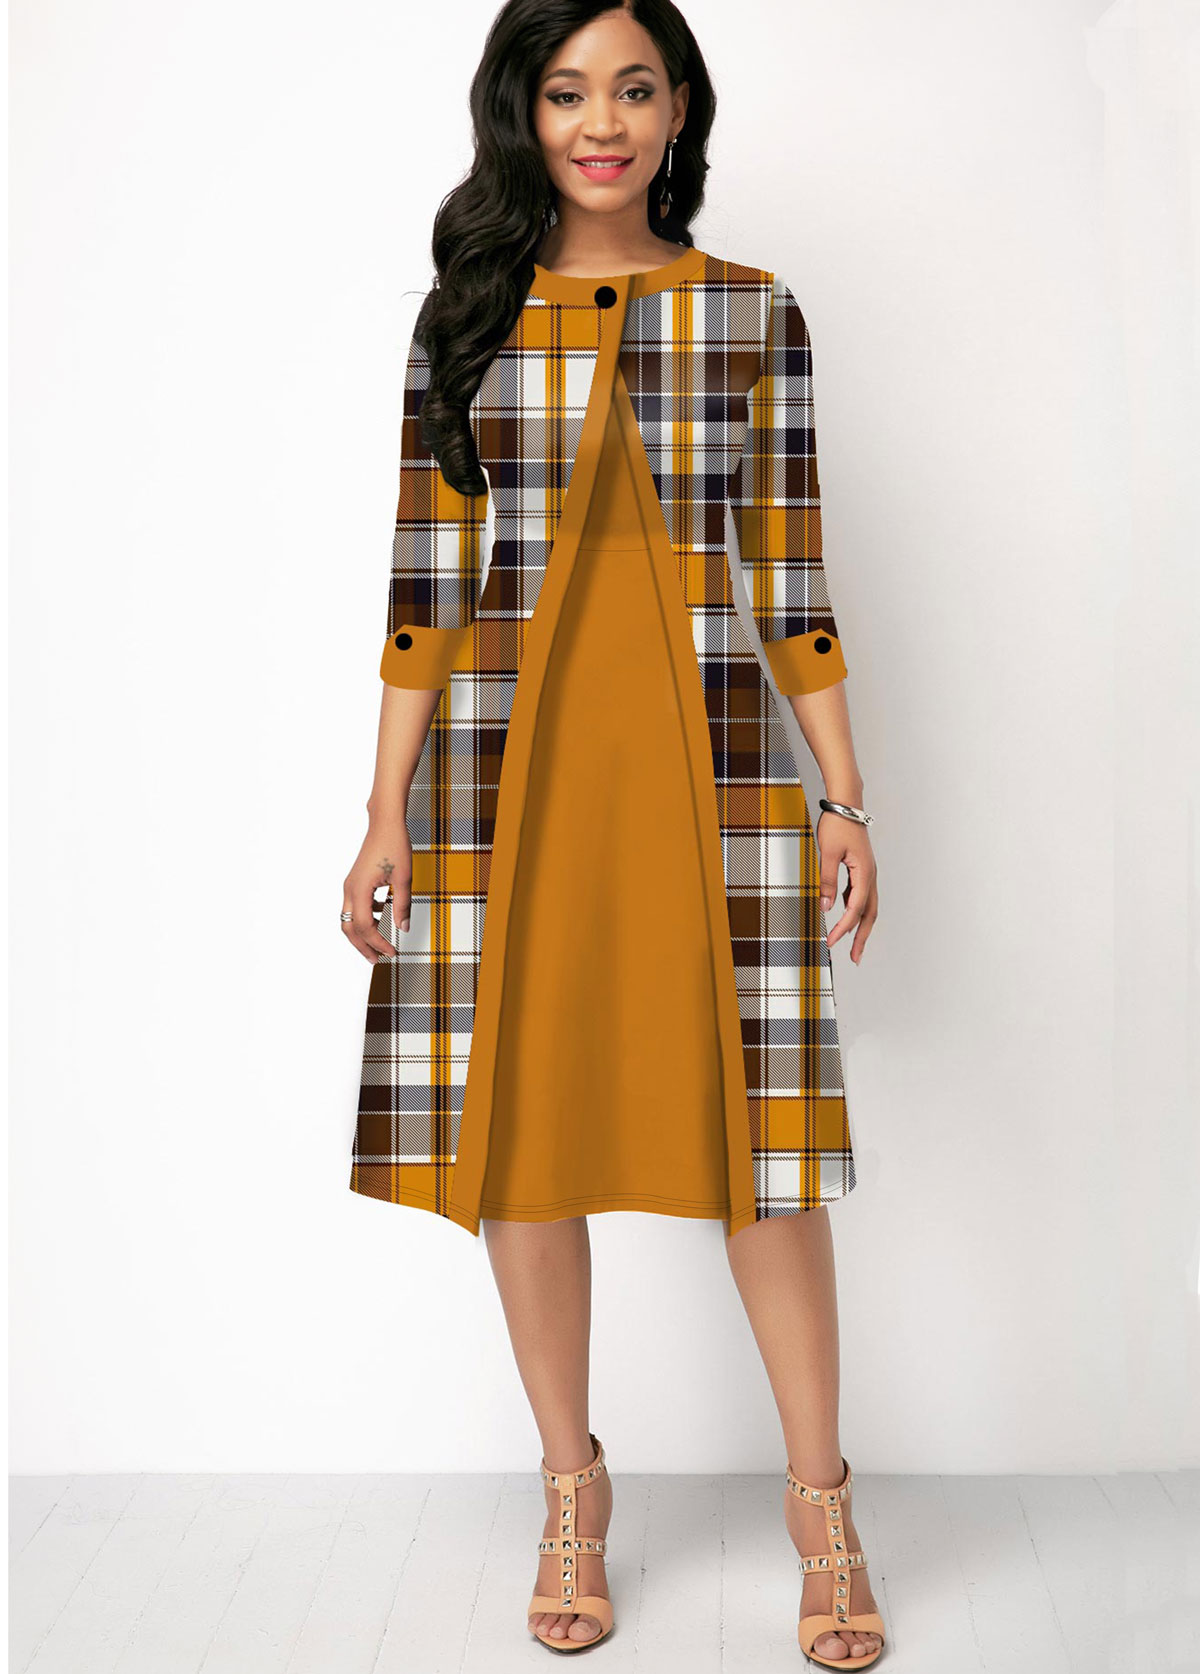 Plaid Print Three Quarter Sleeve Contrast Dress